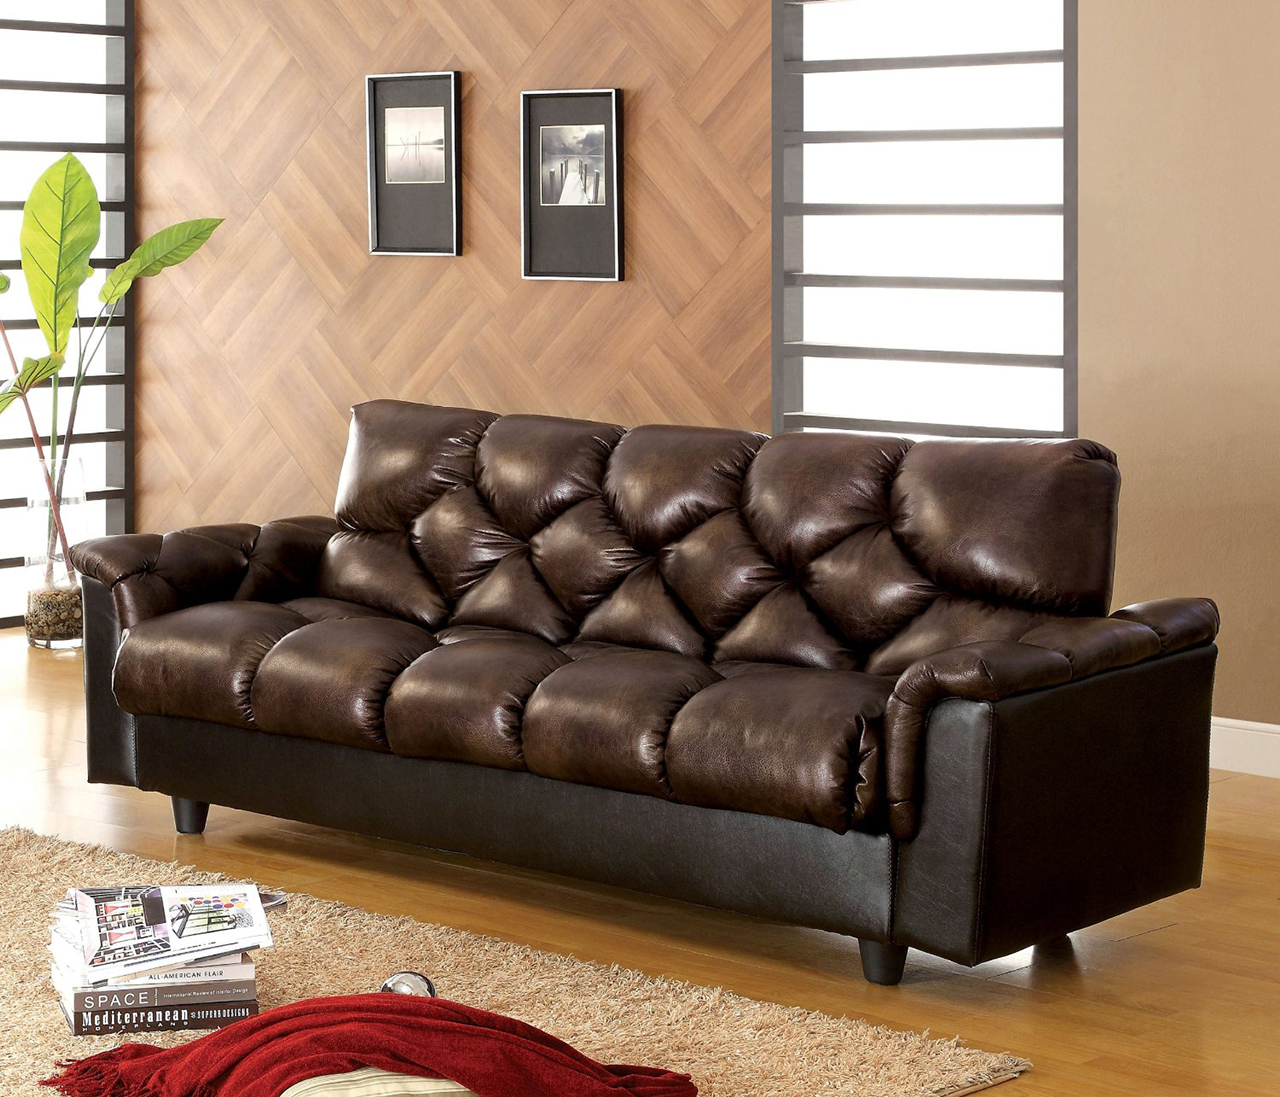 Carlington Leather Vinyl Storage Sleeper Sofa